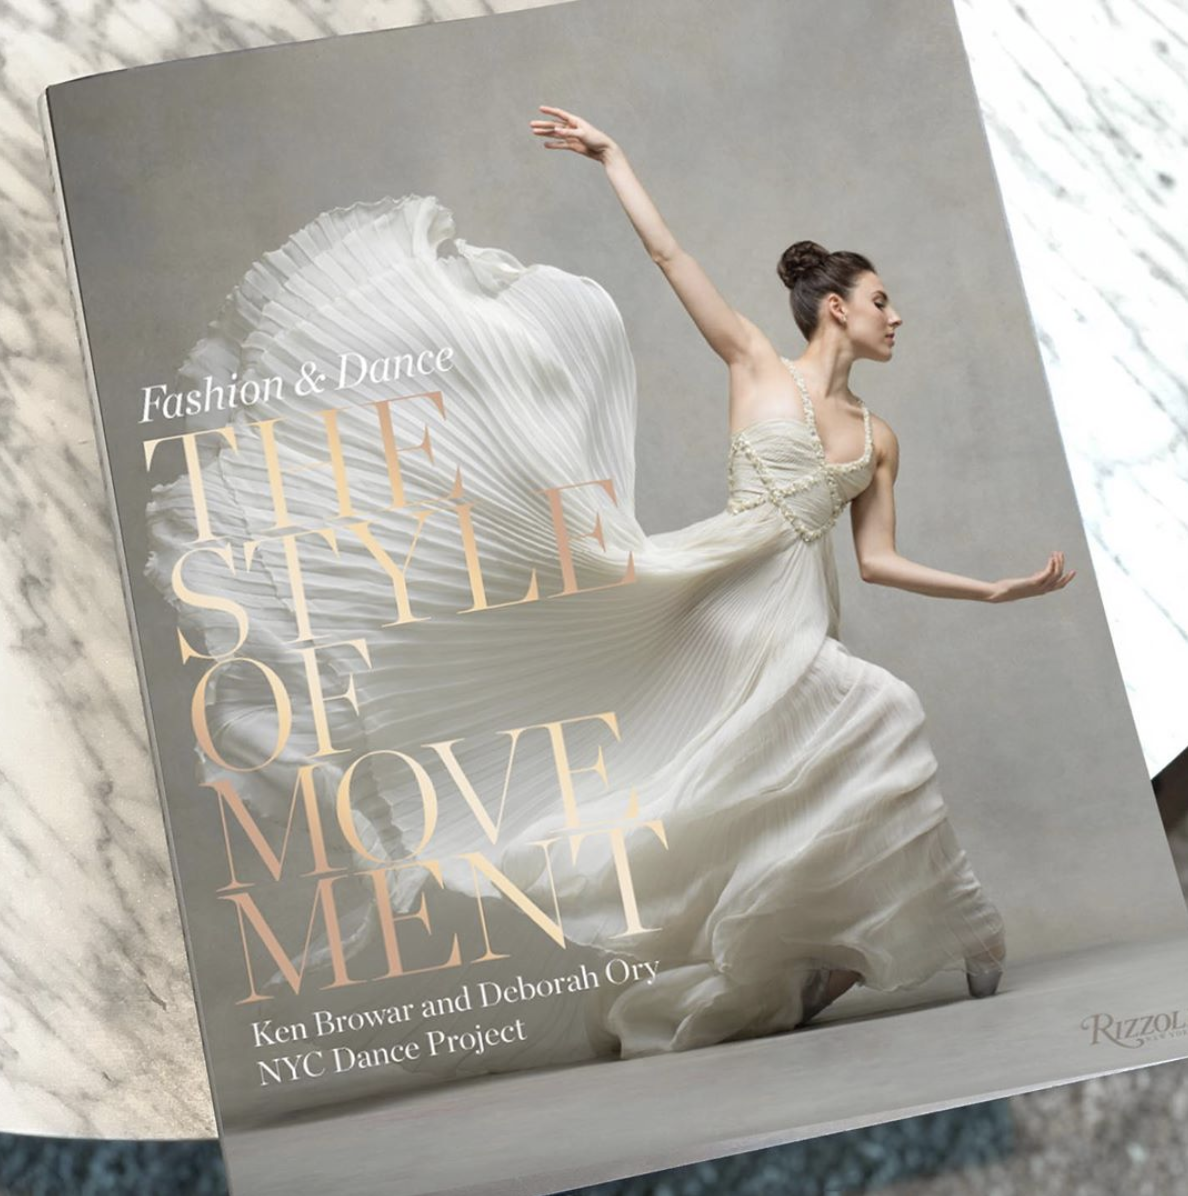 The Style of Movement (Rizzoli), the new book from husband-and-wife photo team Deborah Ory and Ken Browar, the duo behind NYC Dance Project.